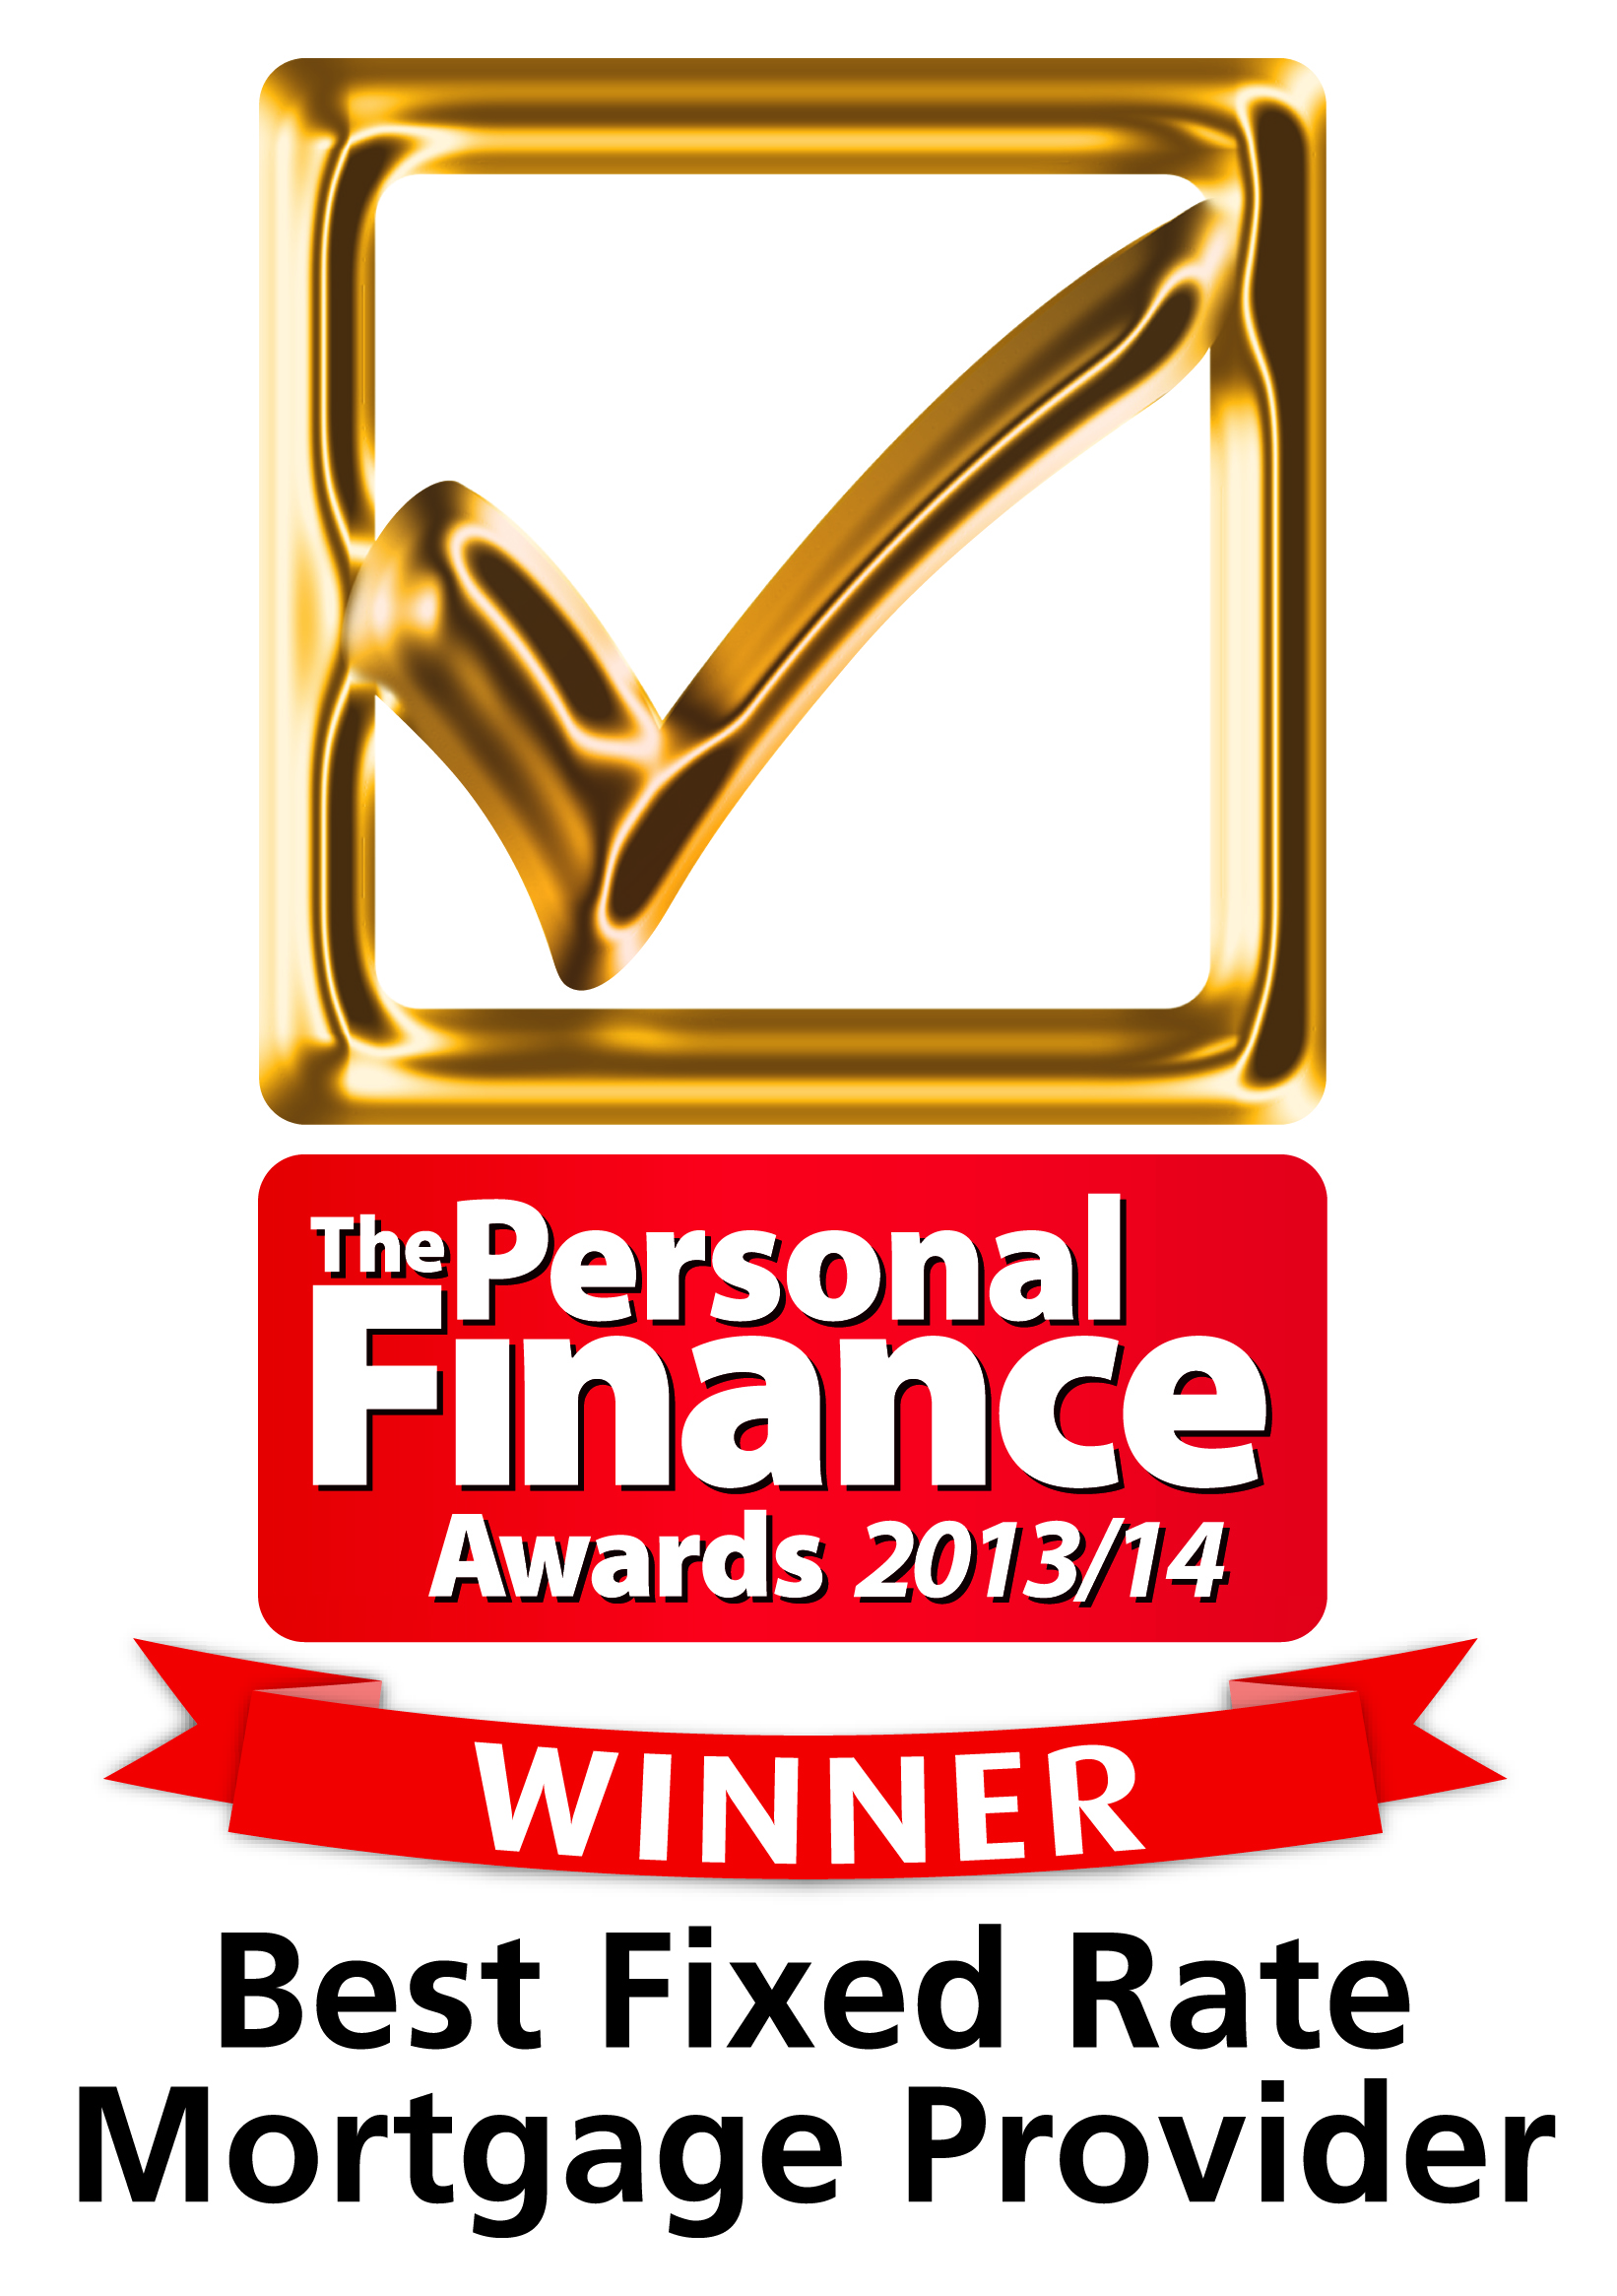 Best fixed rate mortgage provider 2013/14